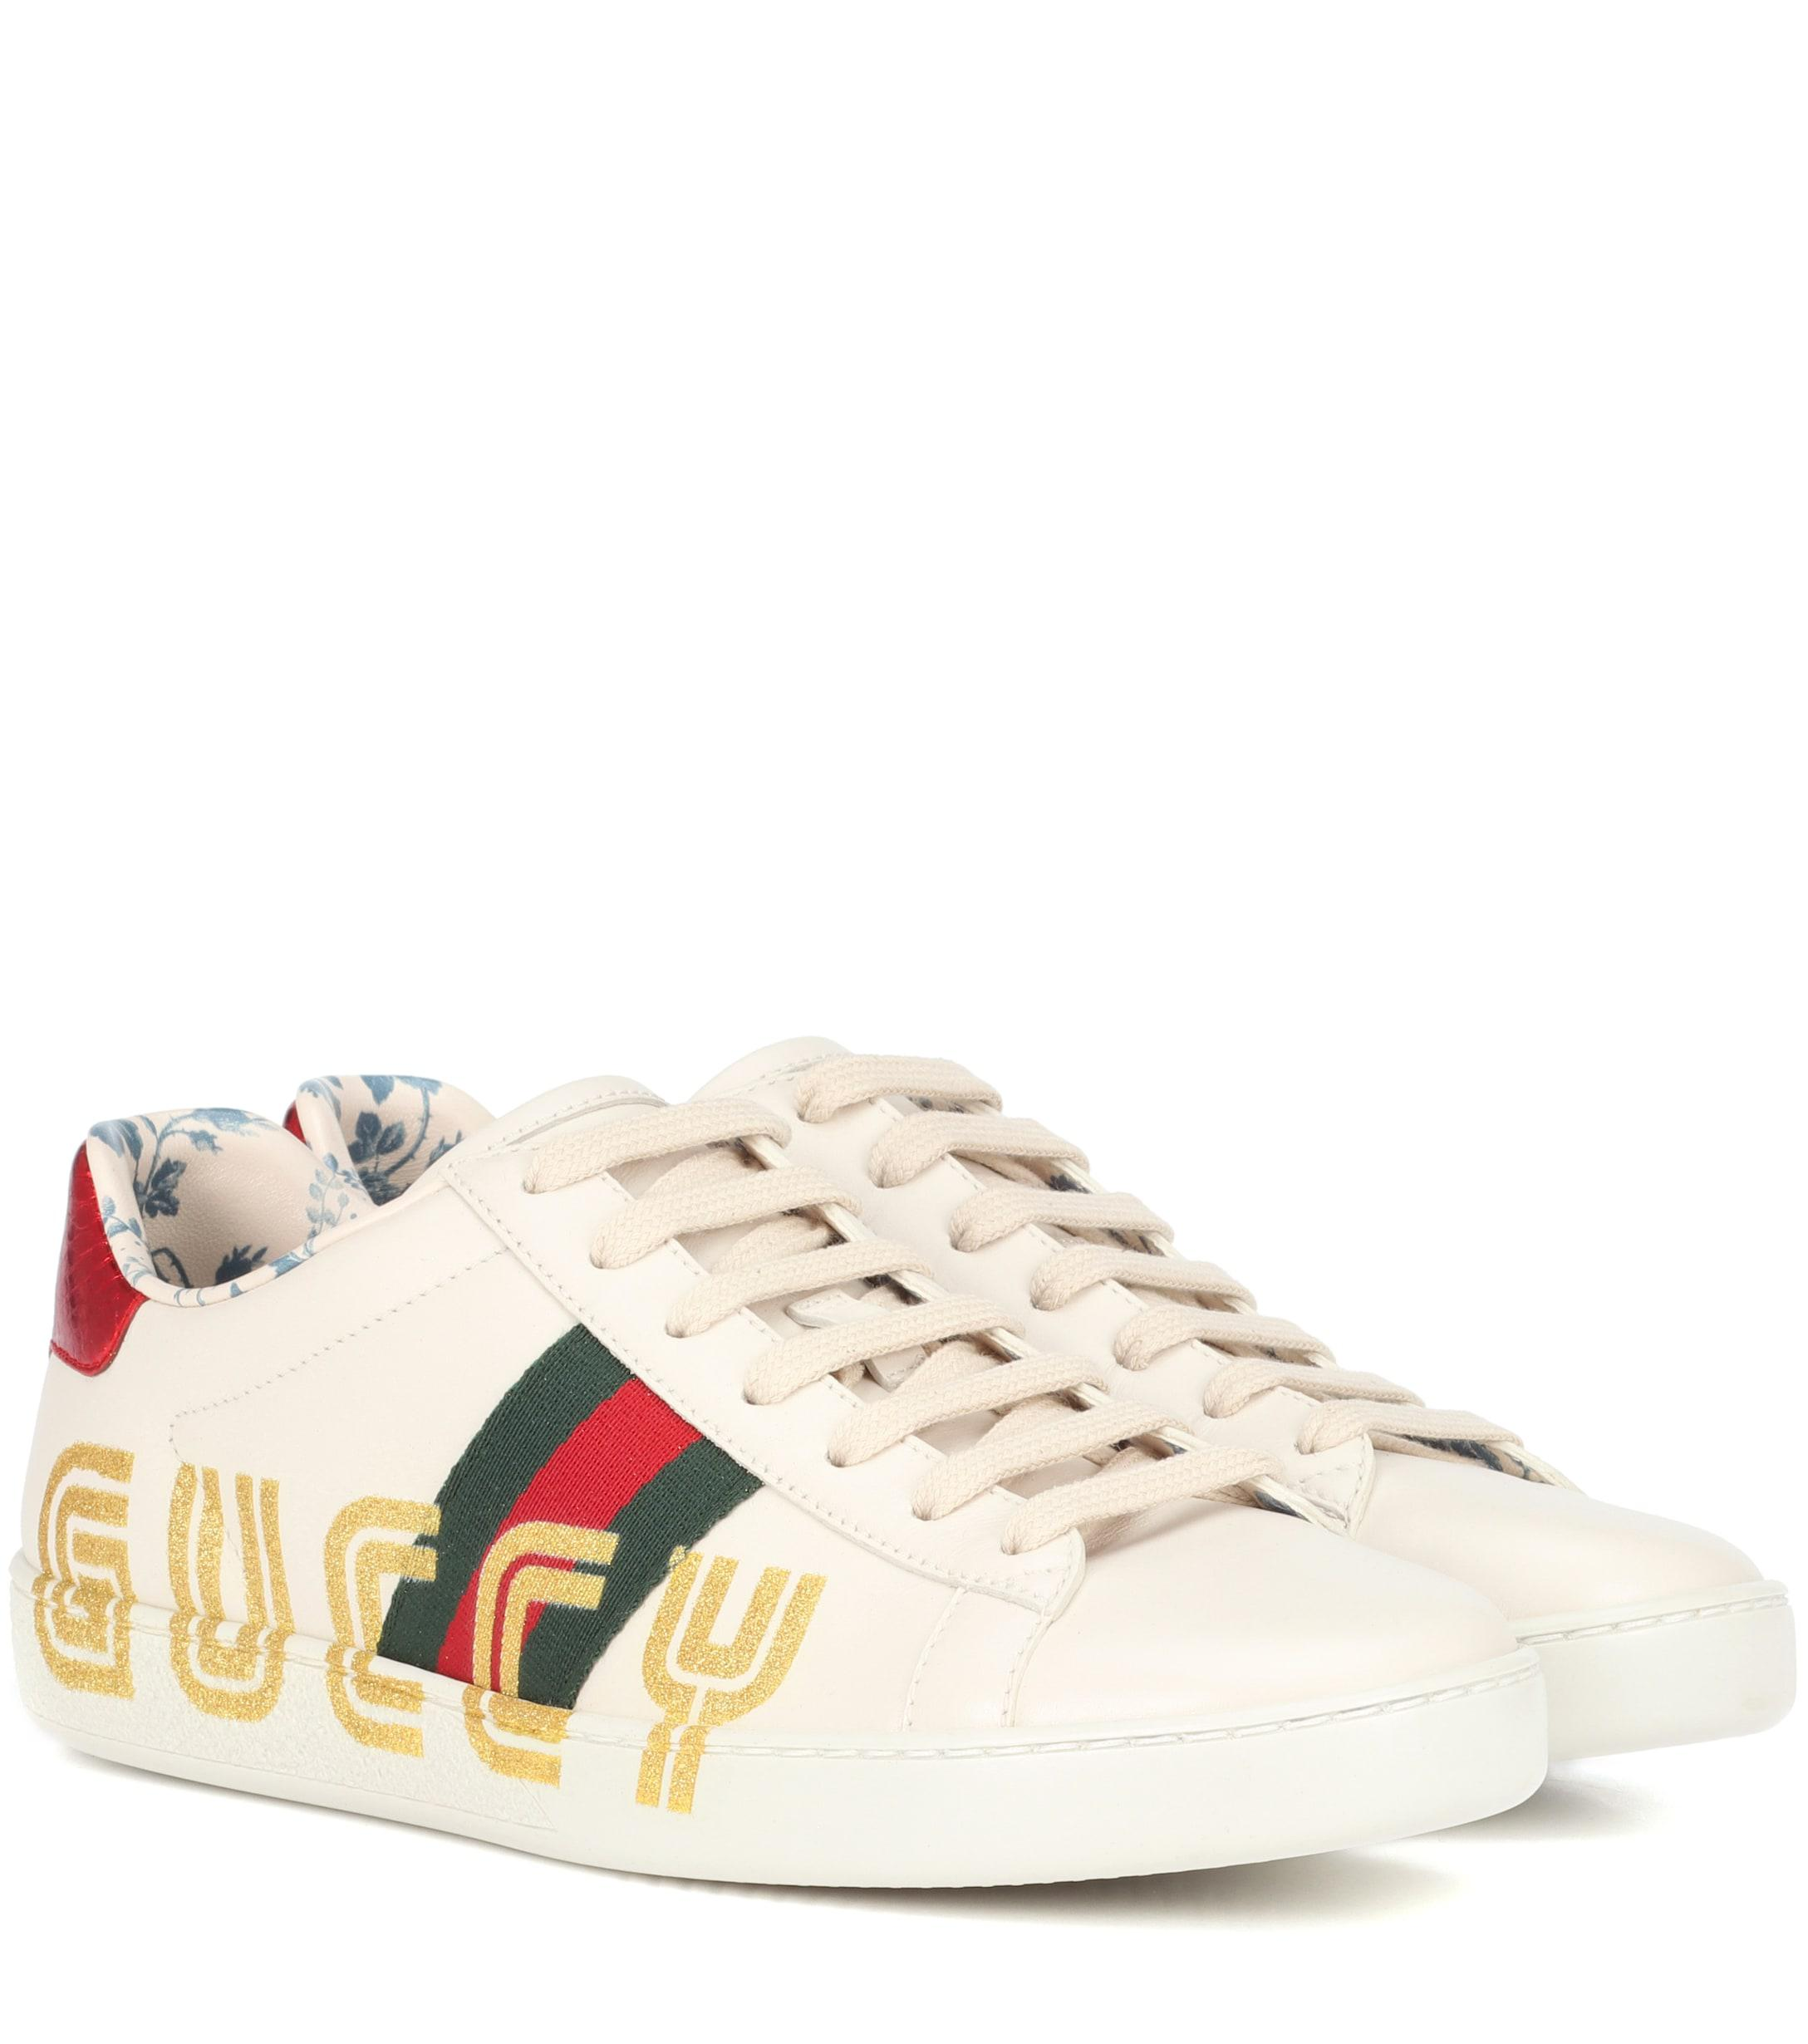 purchase cheap a7b1f c7a45 Lyst - Gucci Ace Leather Sneakers in White